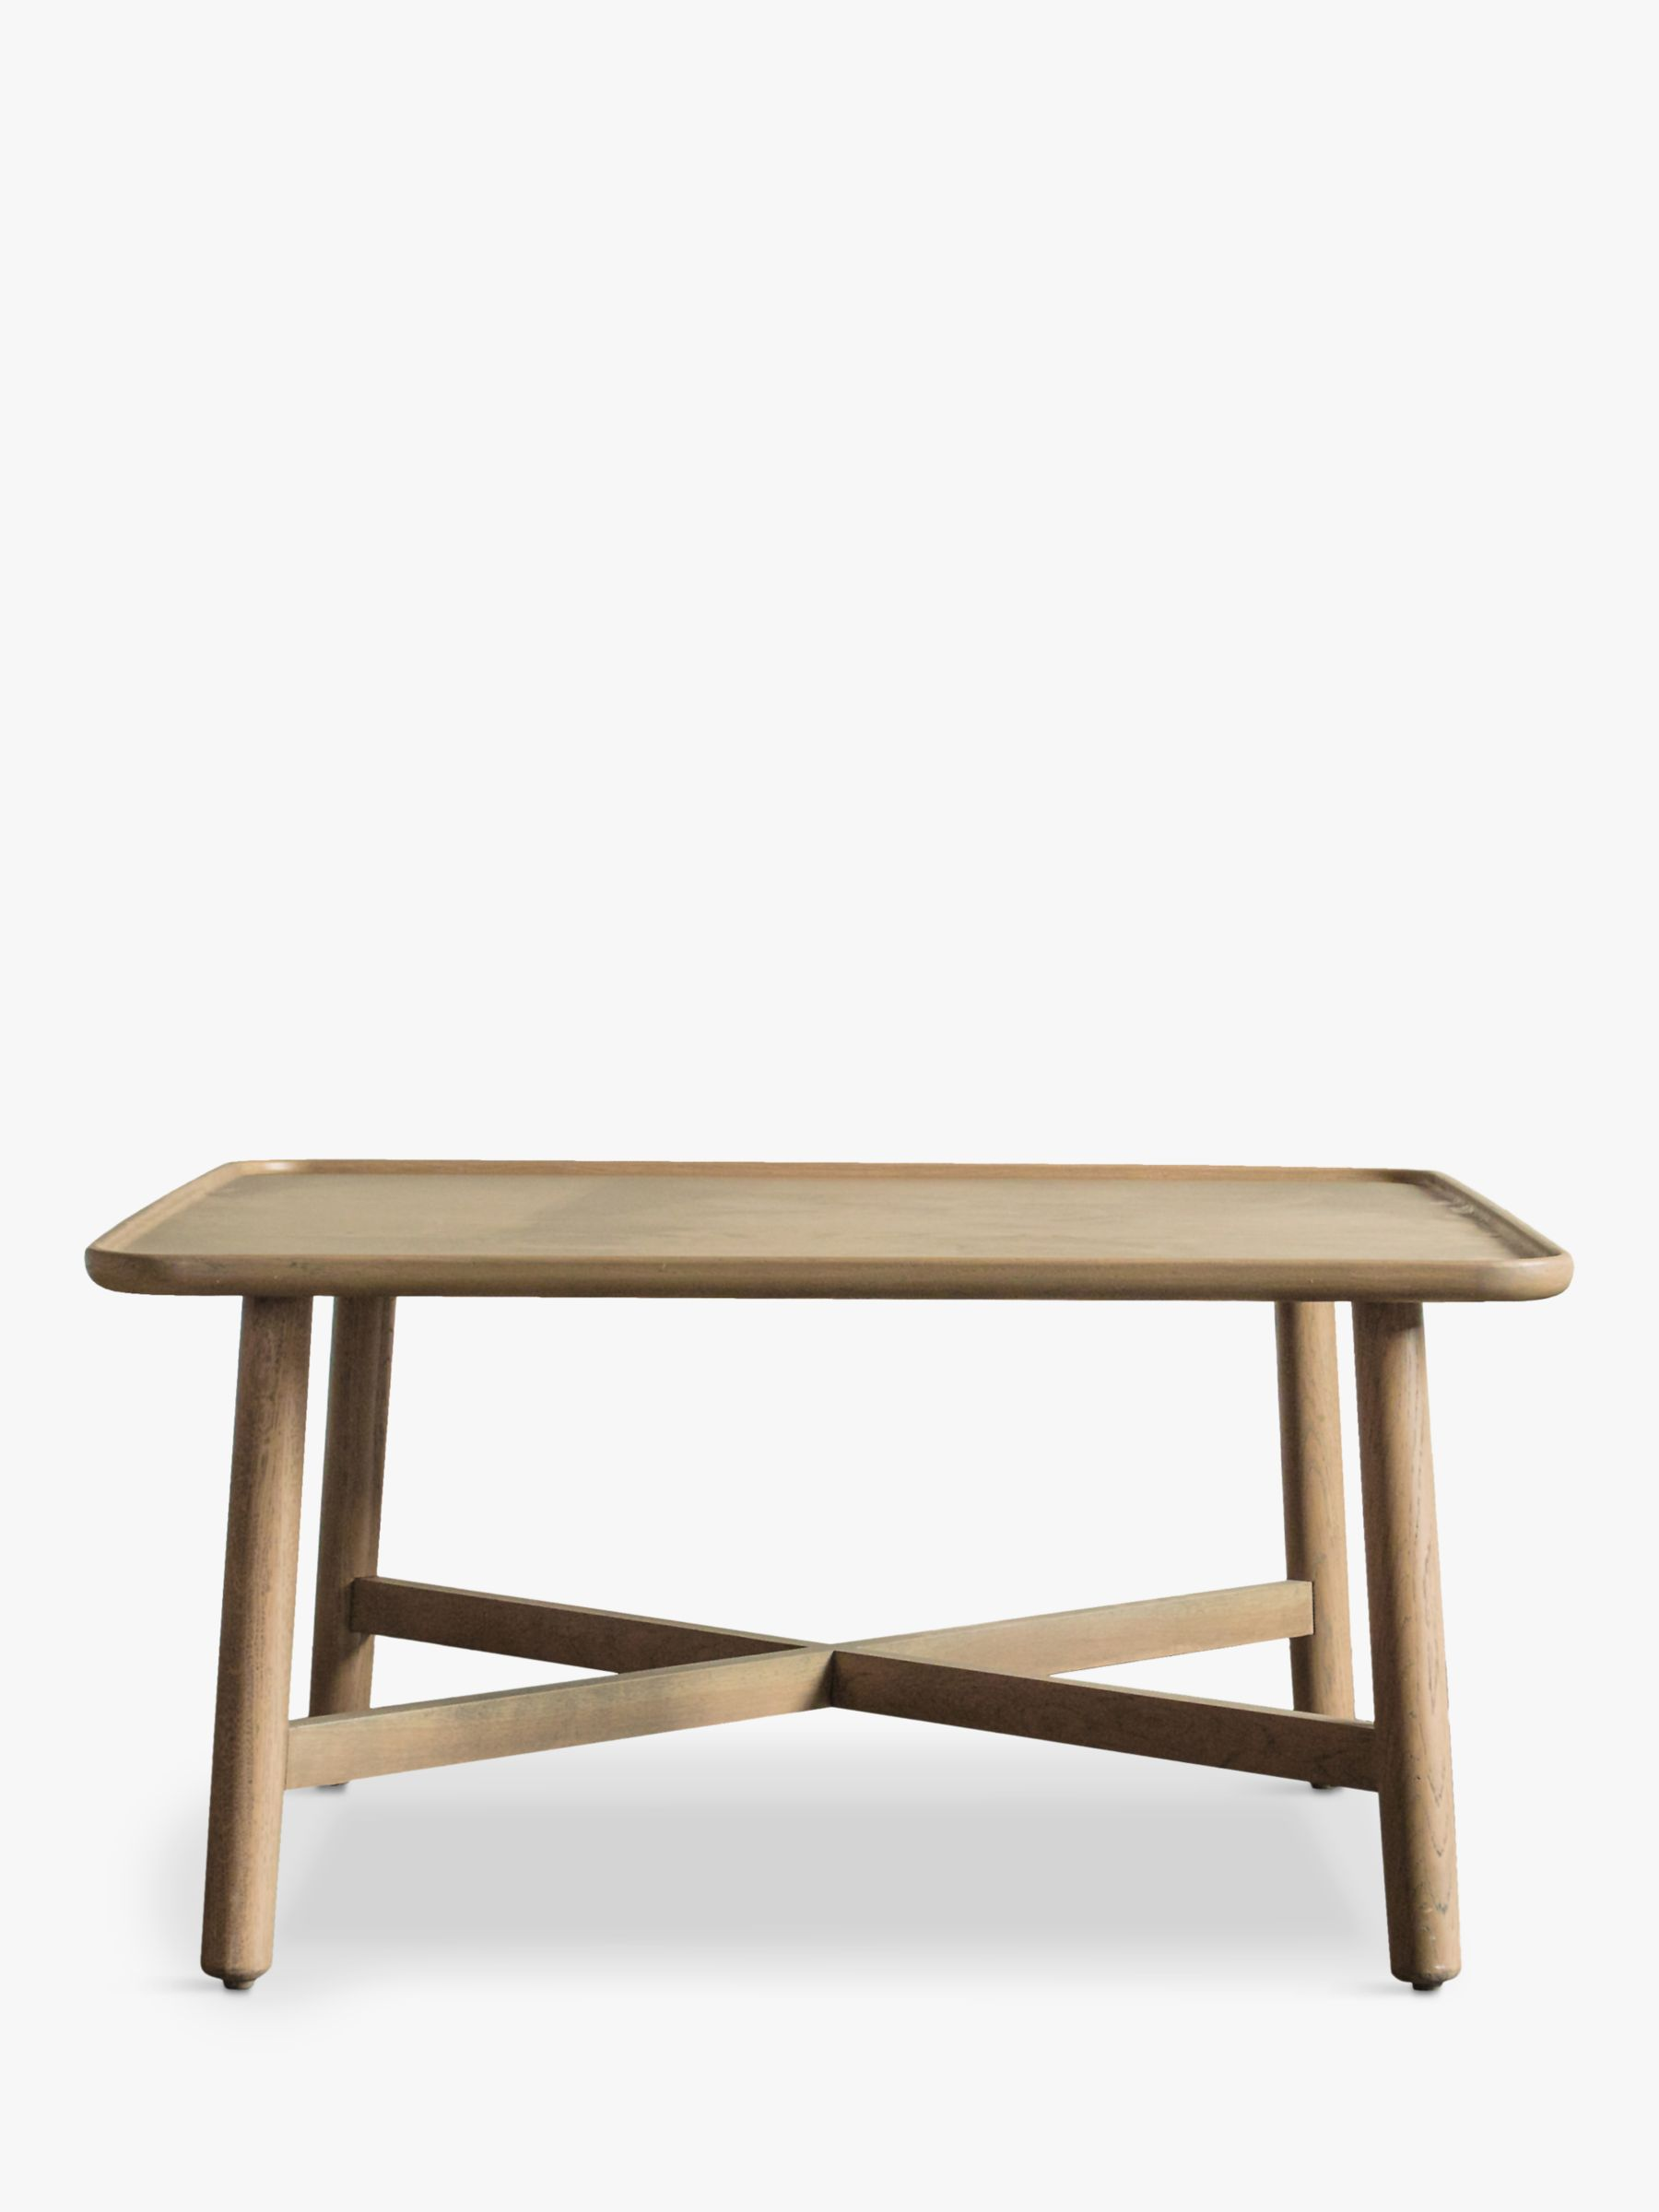 Gallery Direct Kingham Square Coffee Table, Oak